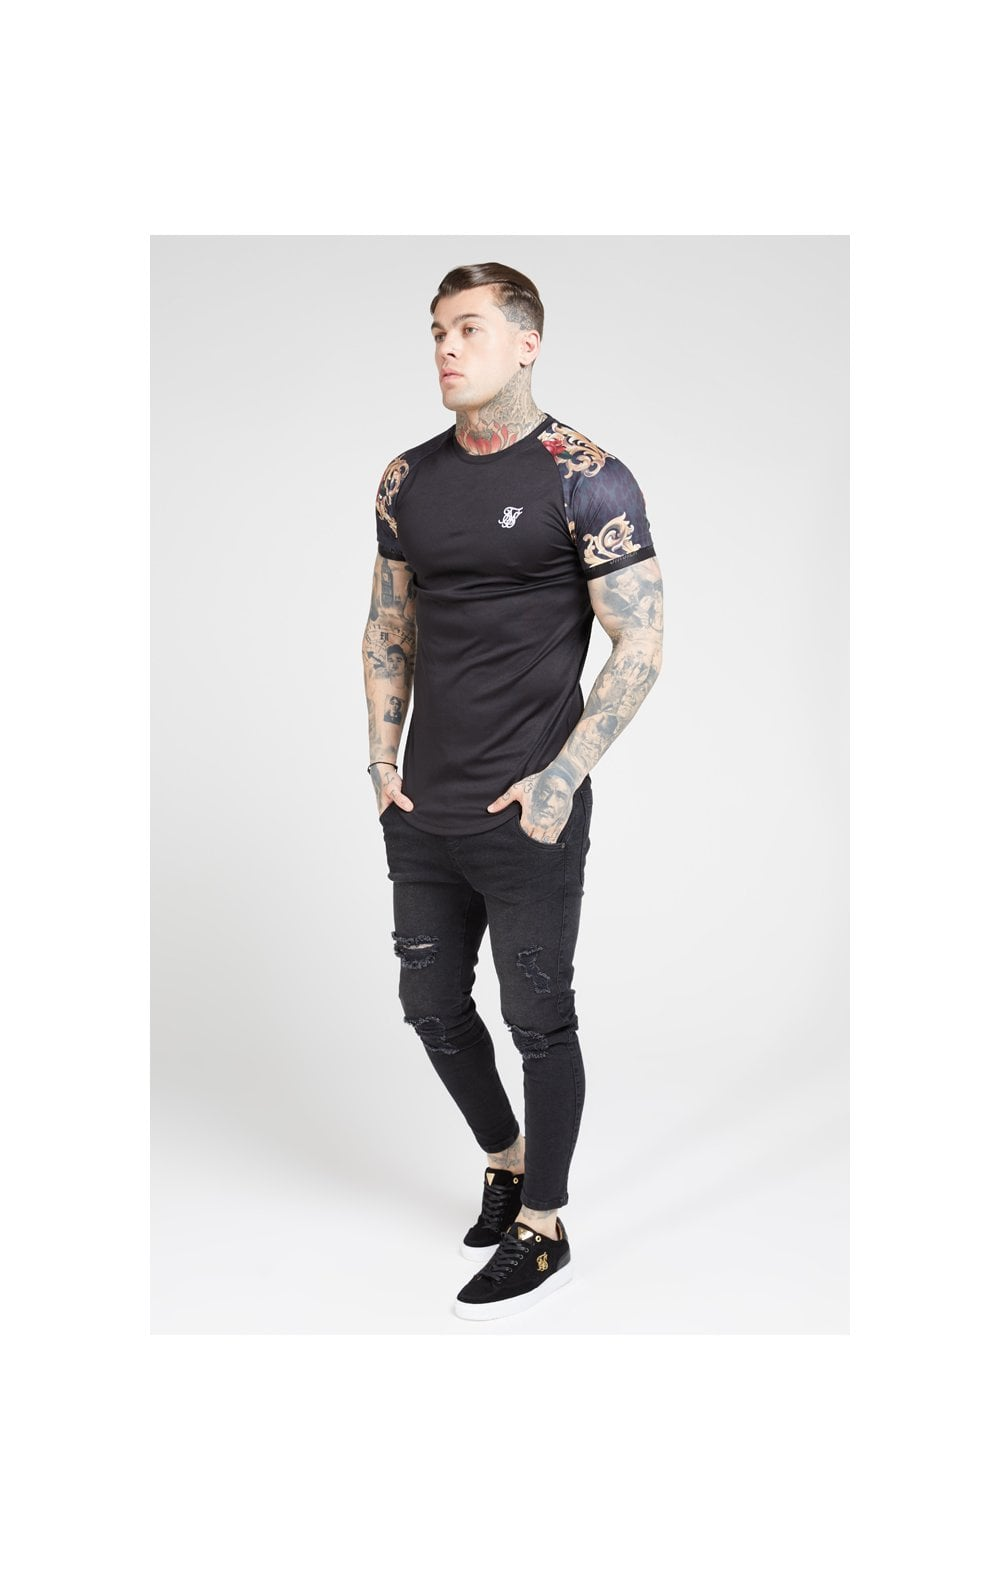 Load image into Gallery viewer, SikSilk S/S Curved Hem Raglan Tech Tee - Jet Black & Floral Animal (2)